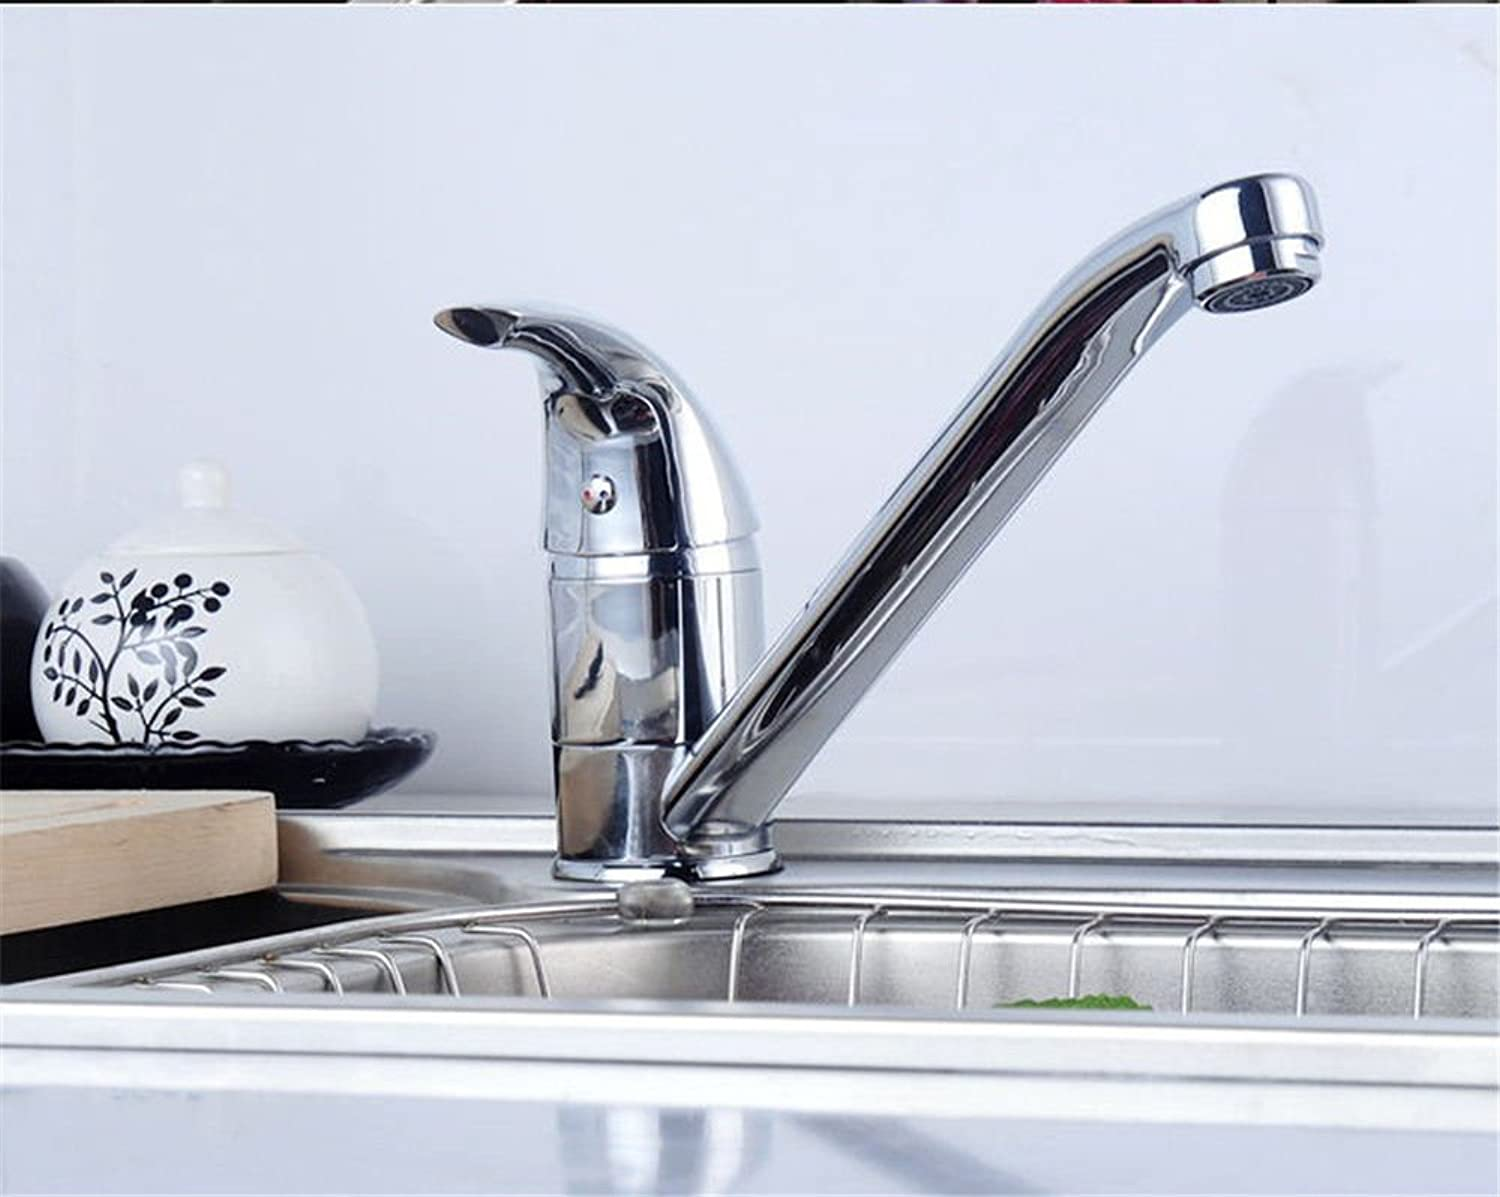 Commercial Kitchen Sink Faucet Brass Copper Kitchen Faucet redating Double-Type Hot and Cold Water Mixing Valve Kitchen Sink Faucet Modern Plating Water-Saving Environmental Predection Faucet